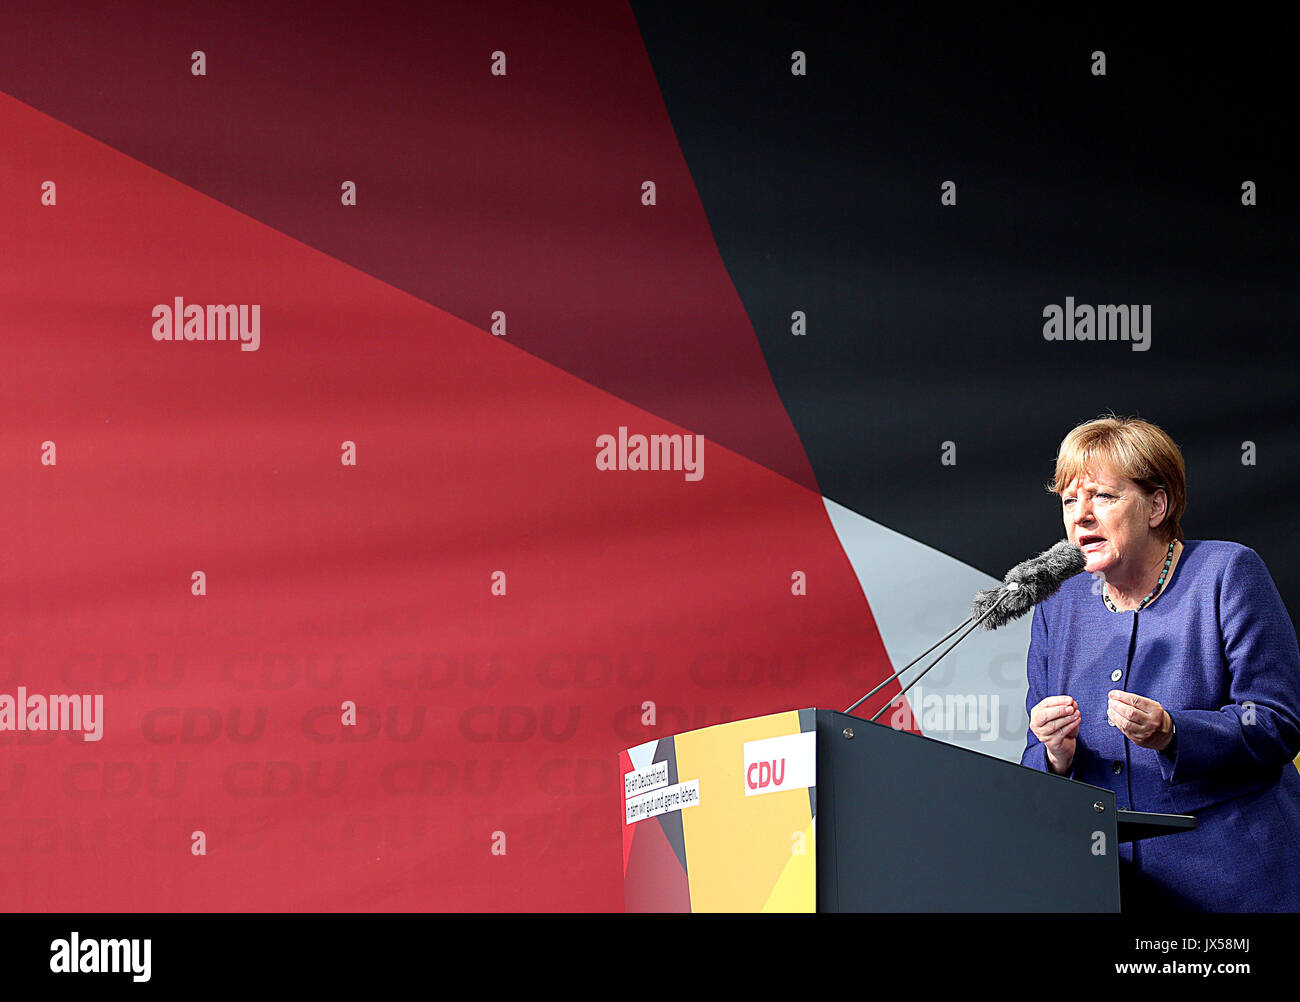 Siegen, Germany. 14th Aug, 2017. German Chancellor Angela Merkel (CDU) speaks during a campaign appearance for the federal parliamentary elections 2017 in Siegen, Germany, 14 August 2017. Photo: Oliver Berg/dpa/Alamy Live News - Stock Image